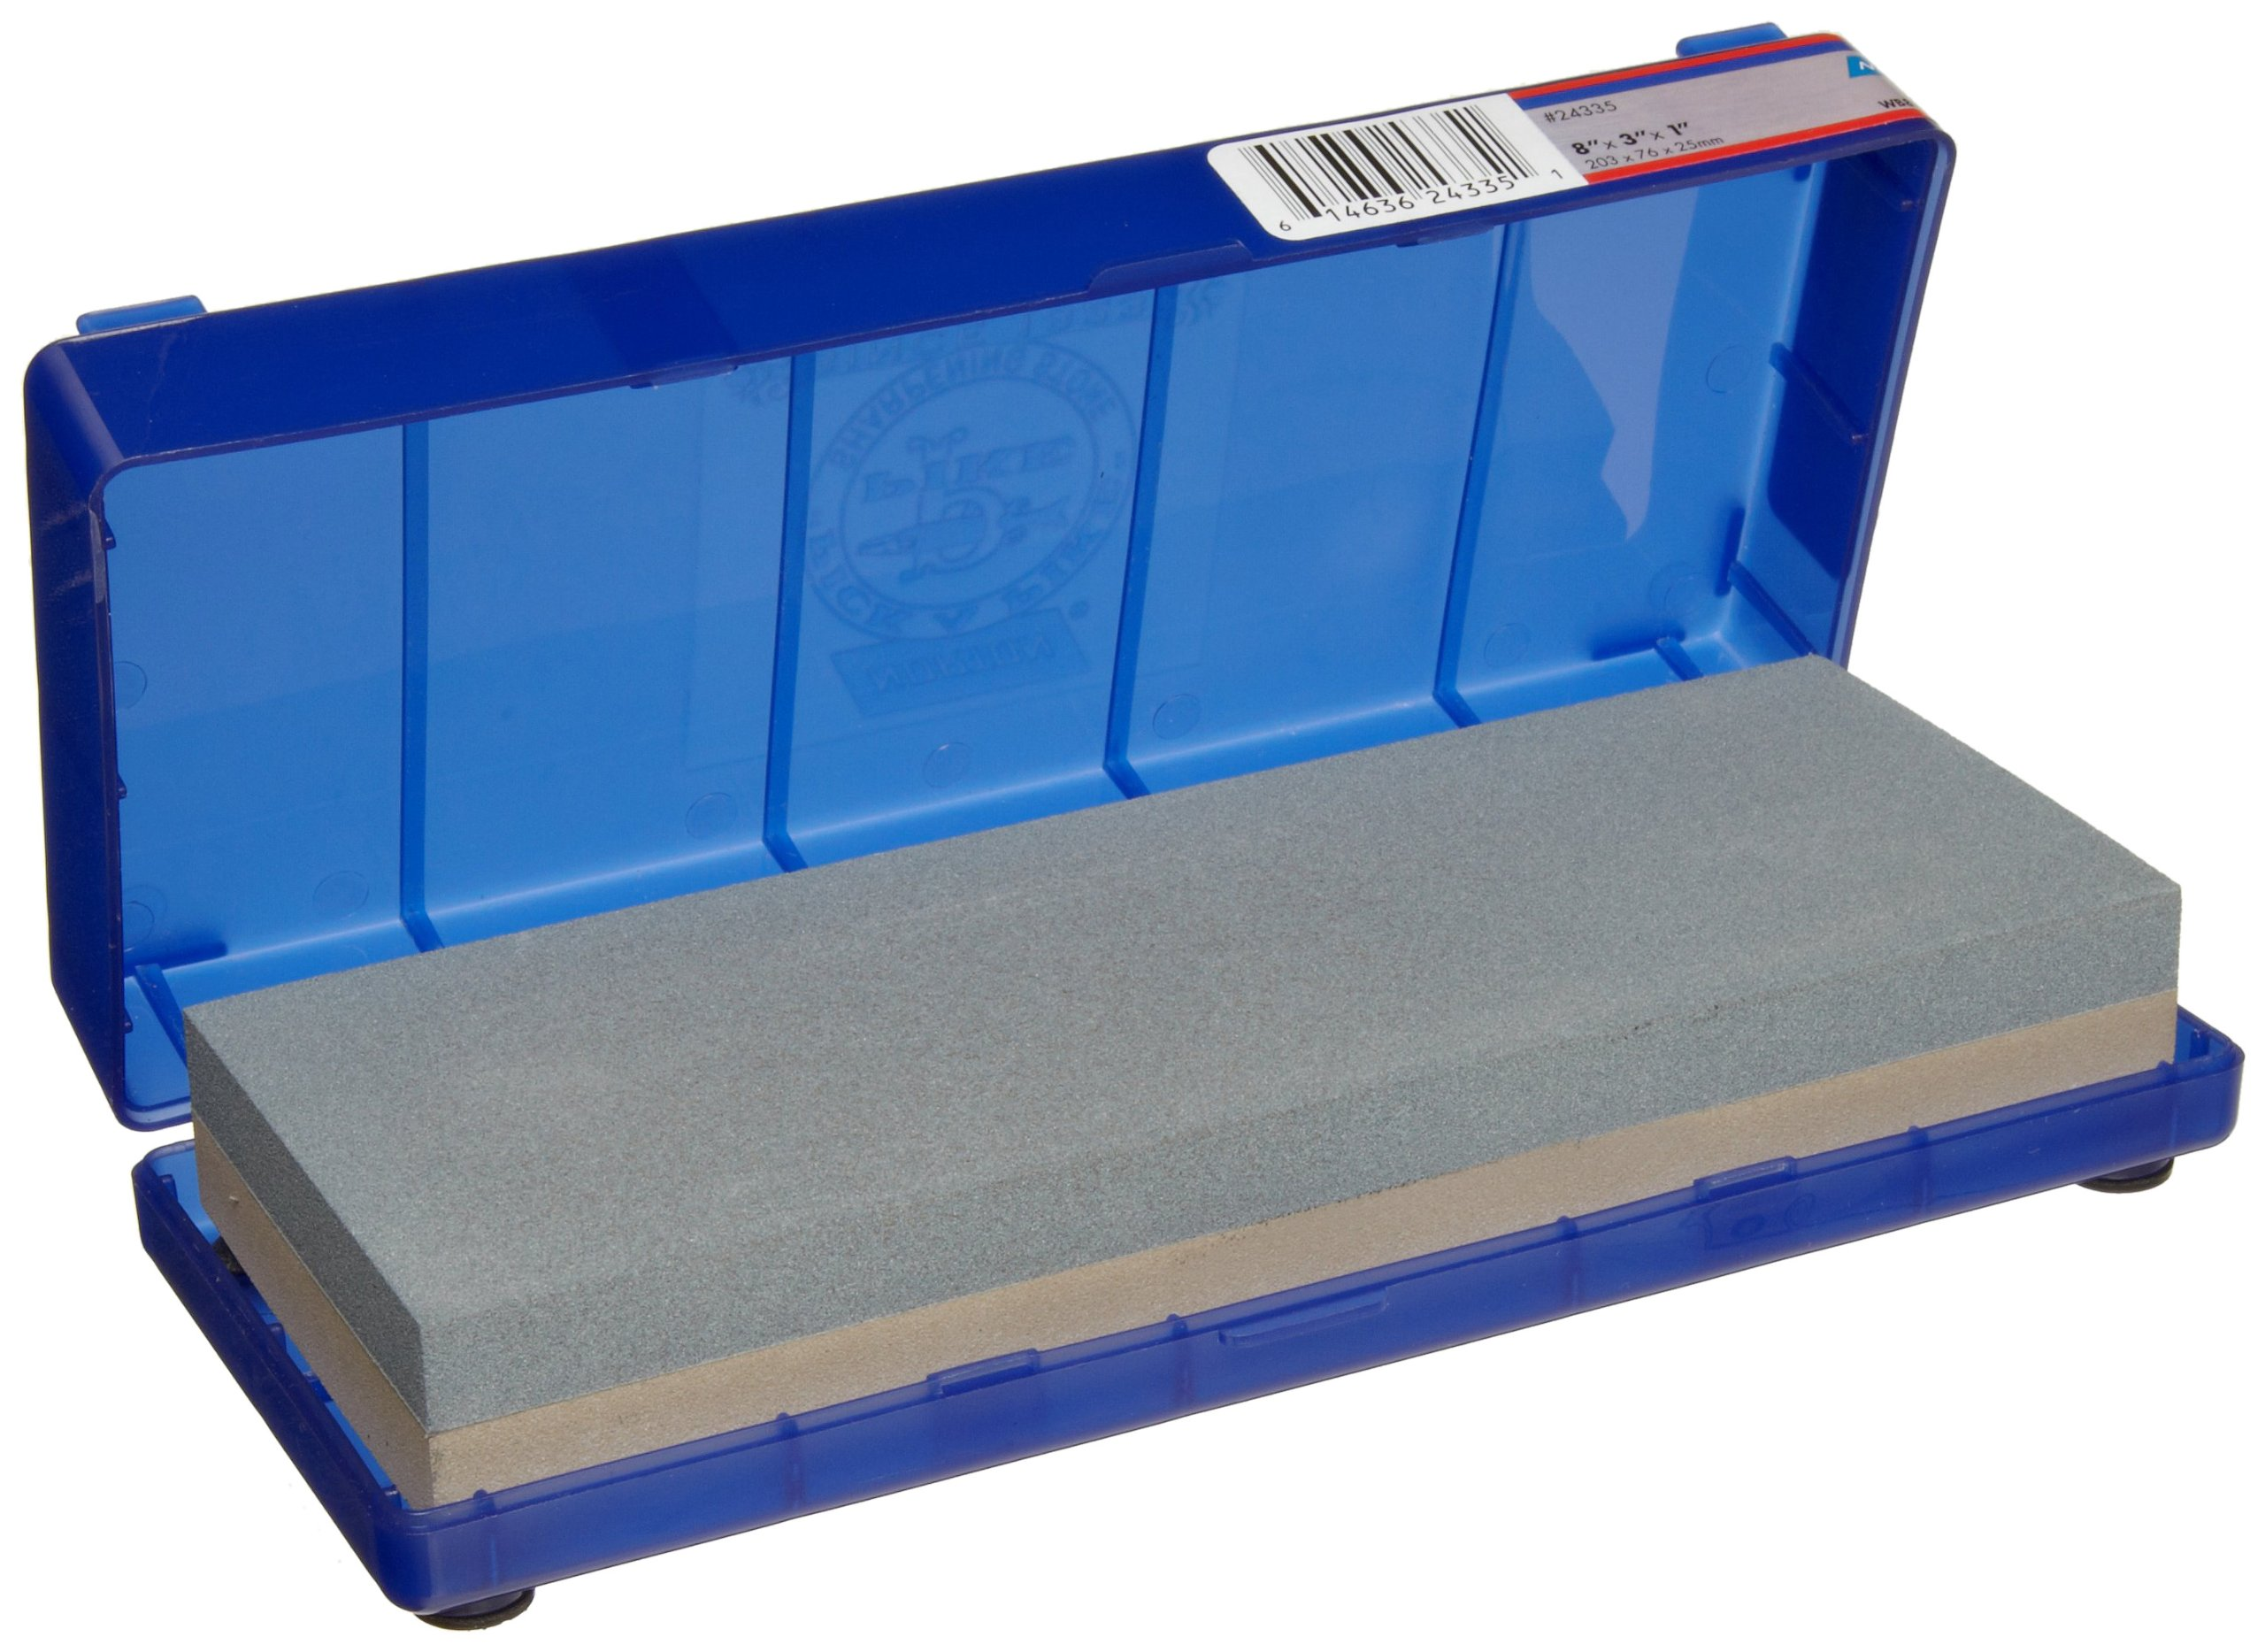 Norton 24335 Japanese-Style Combination Waterstone 220/1000 Grit, 8-Inch by 3-Inch by 1-Inch by Norton Abrasives - St. Gobain